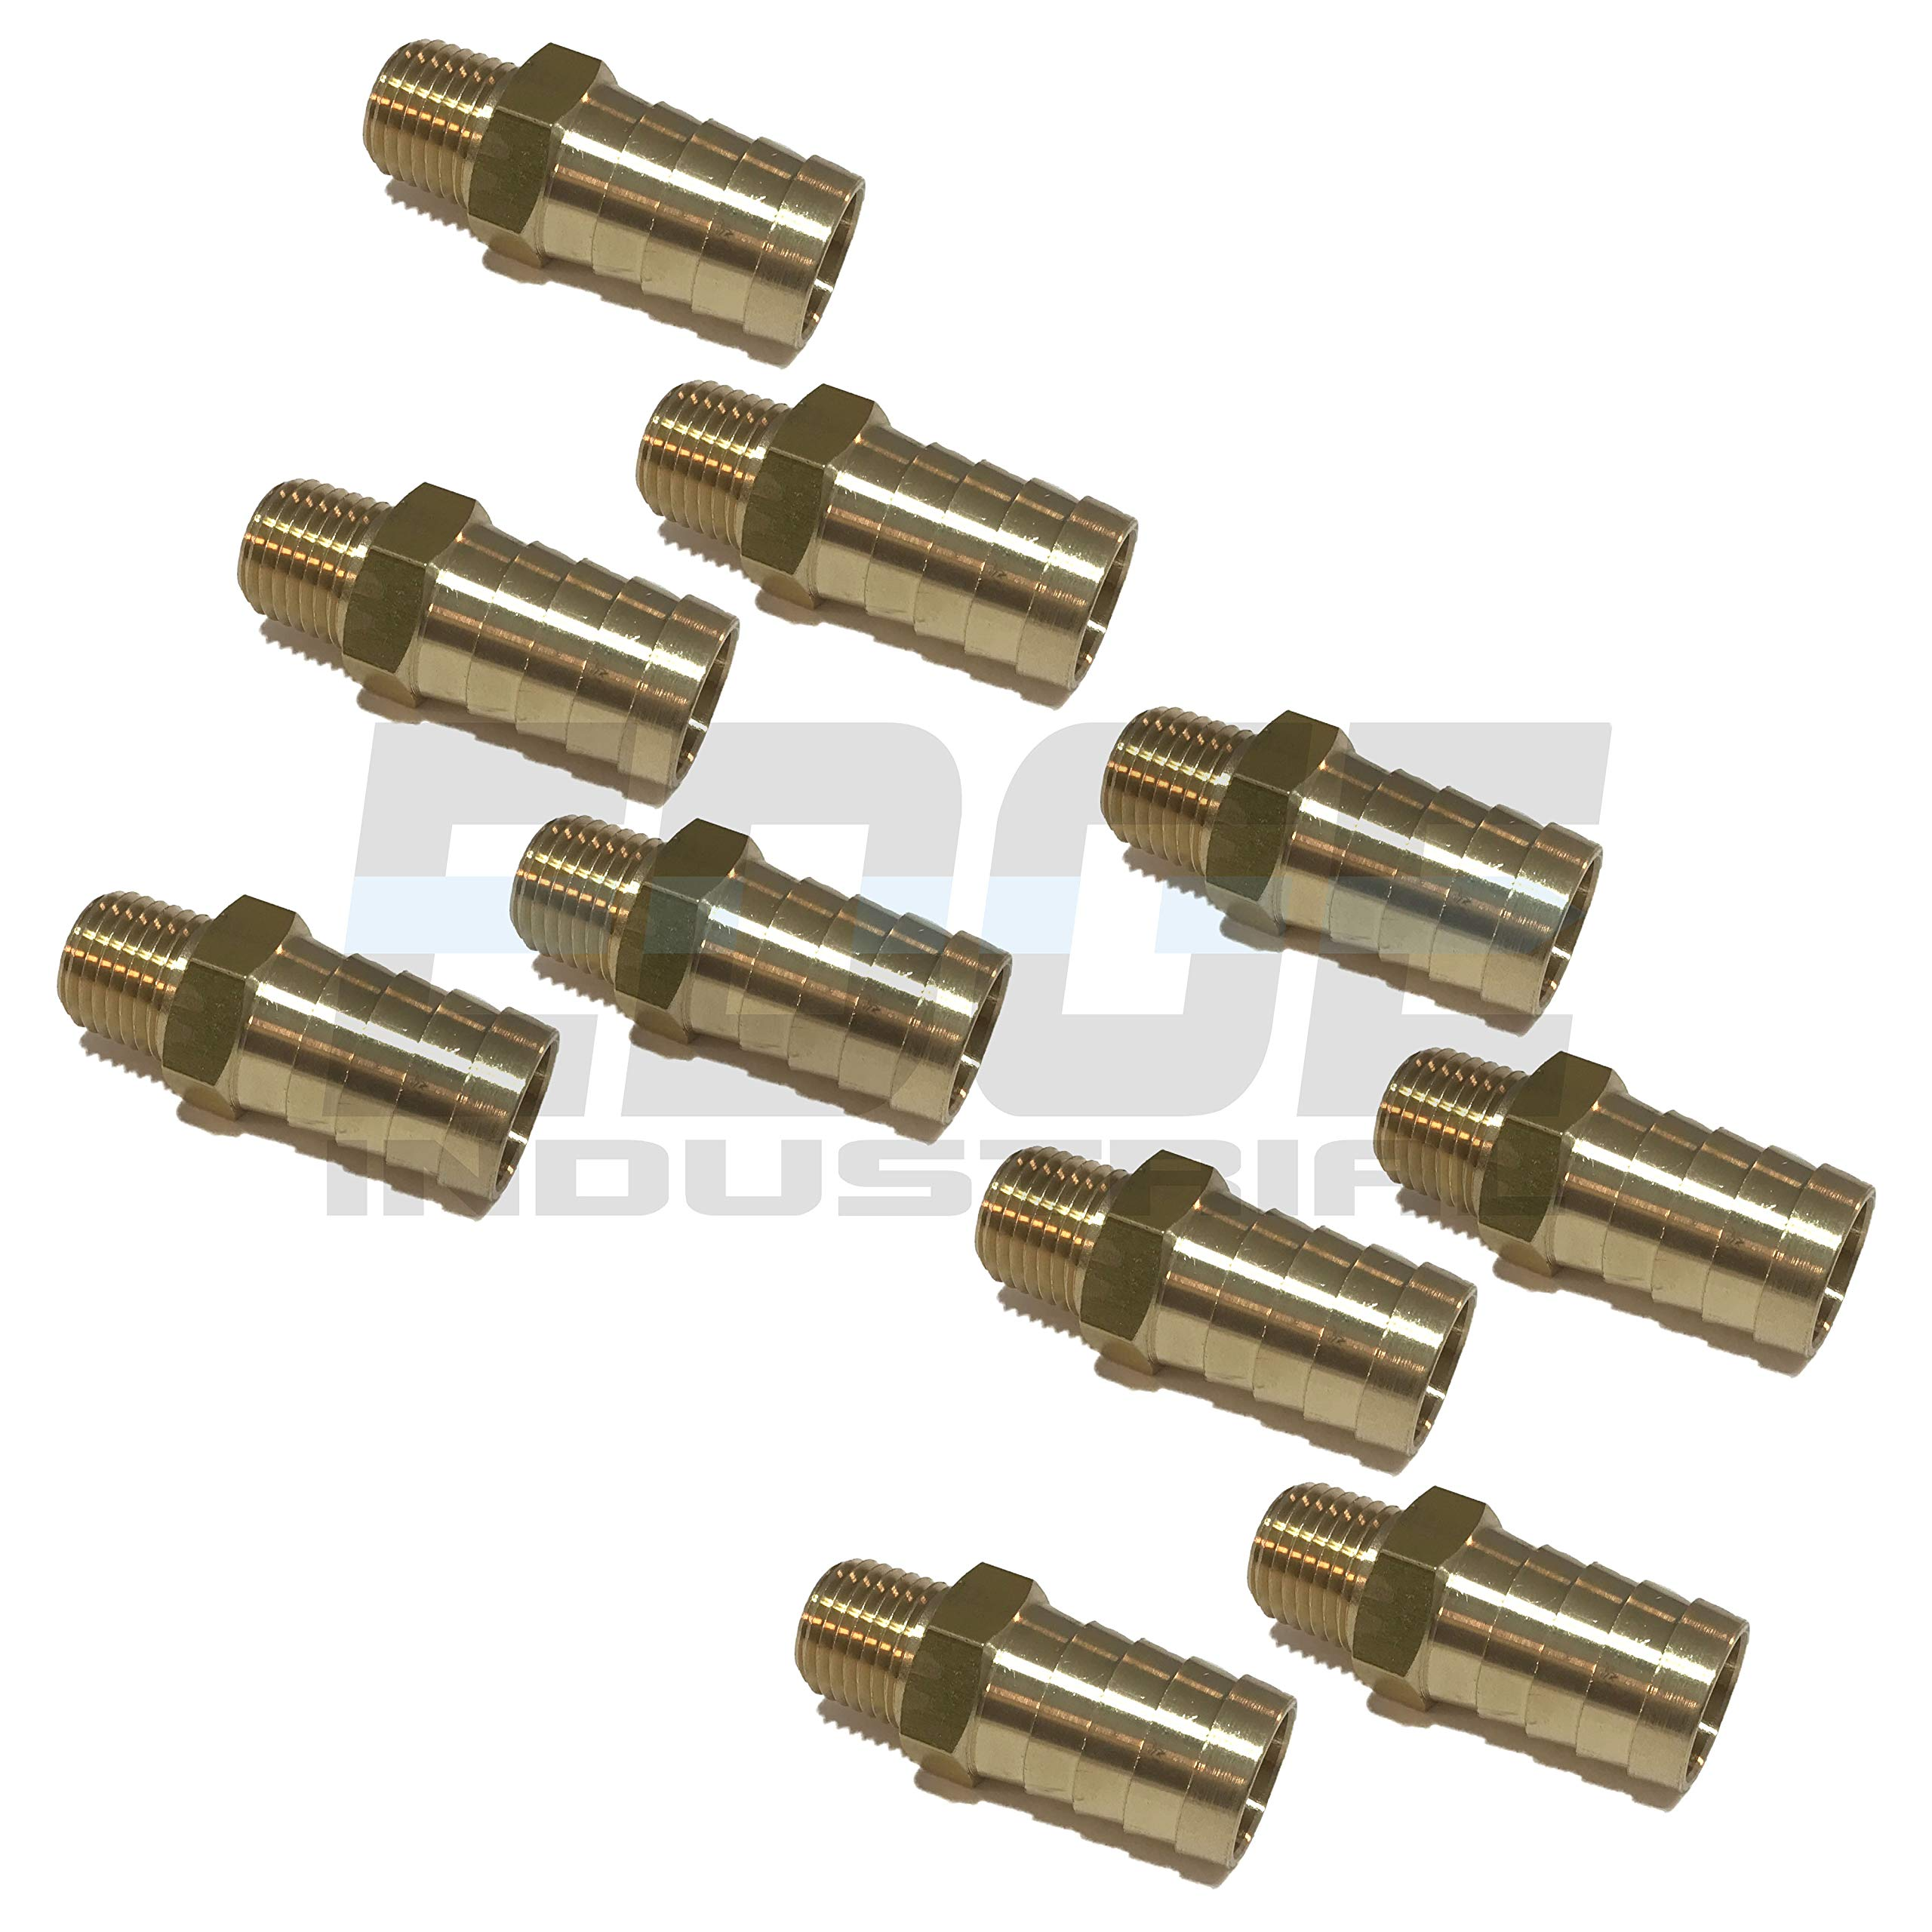 EDGE INDUSTRIAL 5/8'' Hose ID to 1/4'' Male NPT MNPT Straight Brass Fitting Fuel / AIR / Water / Oil / Gas / WOG (Qty 10)